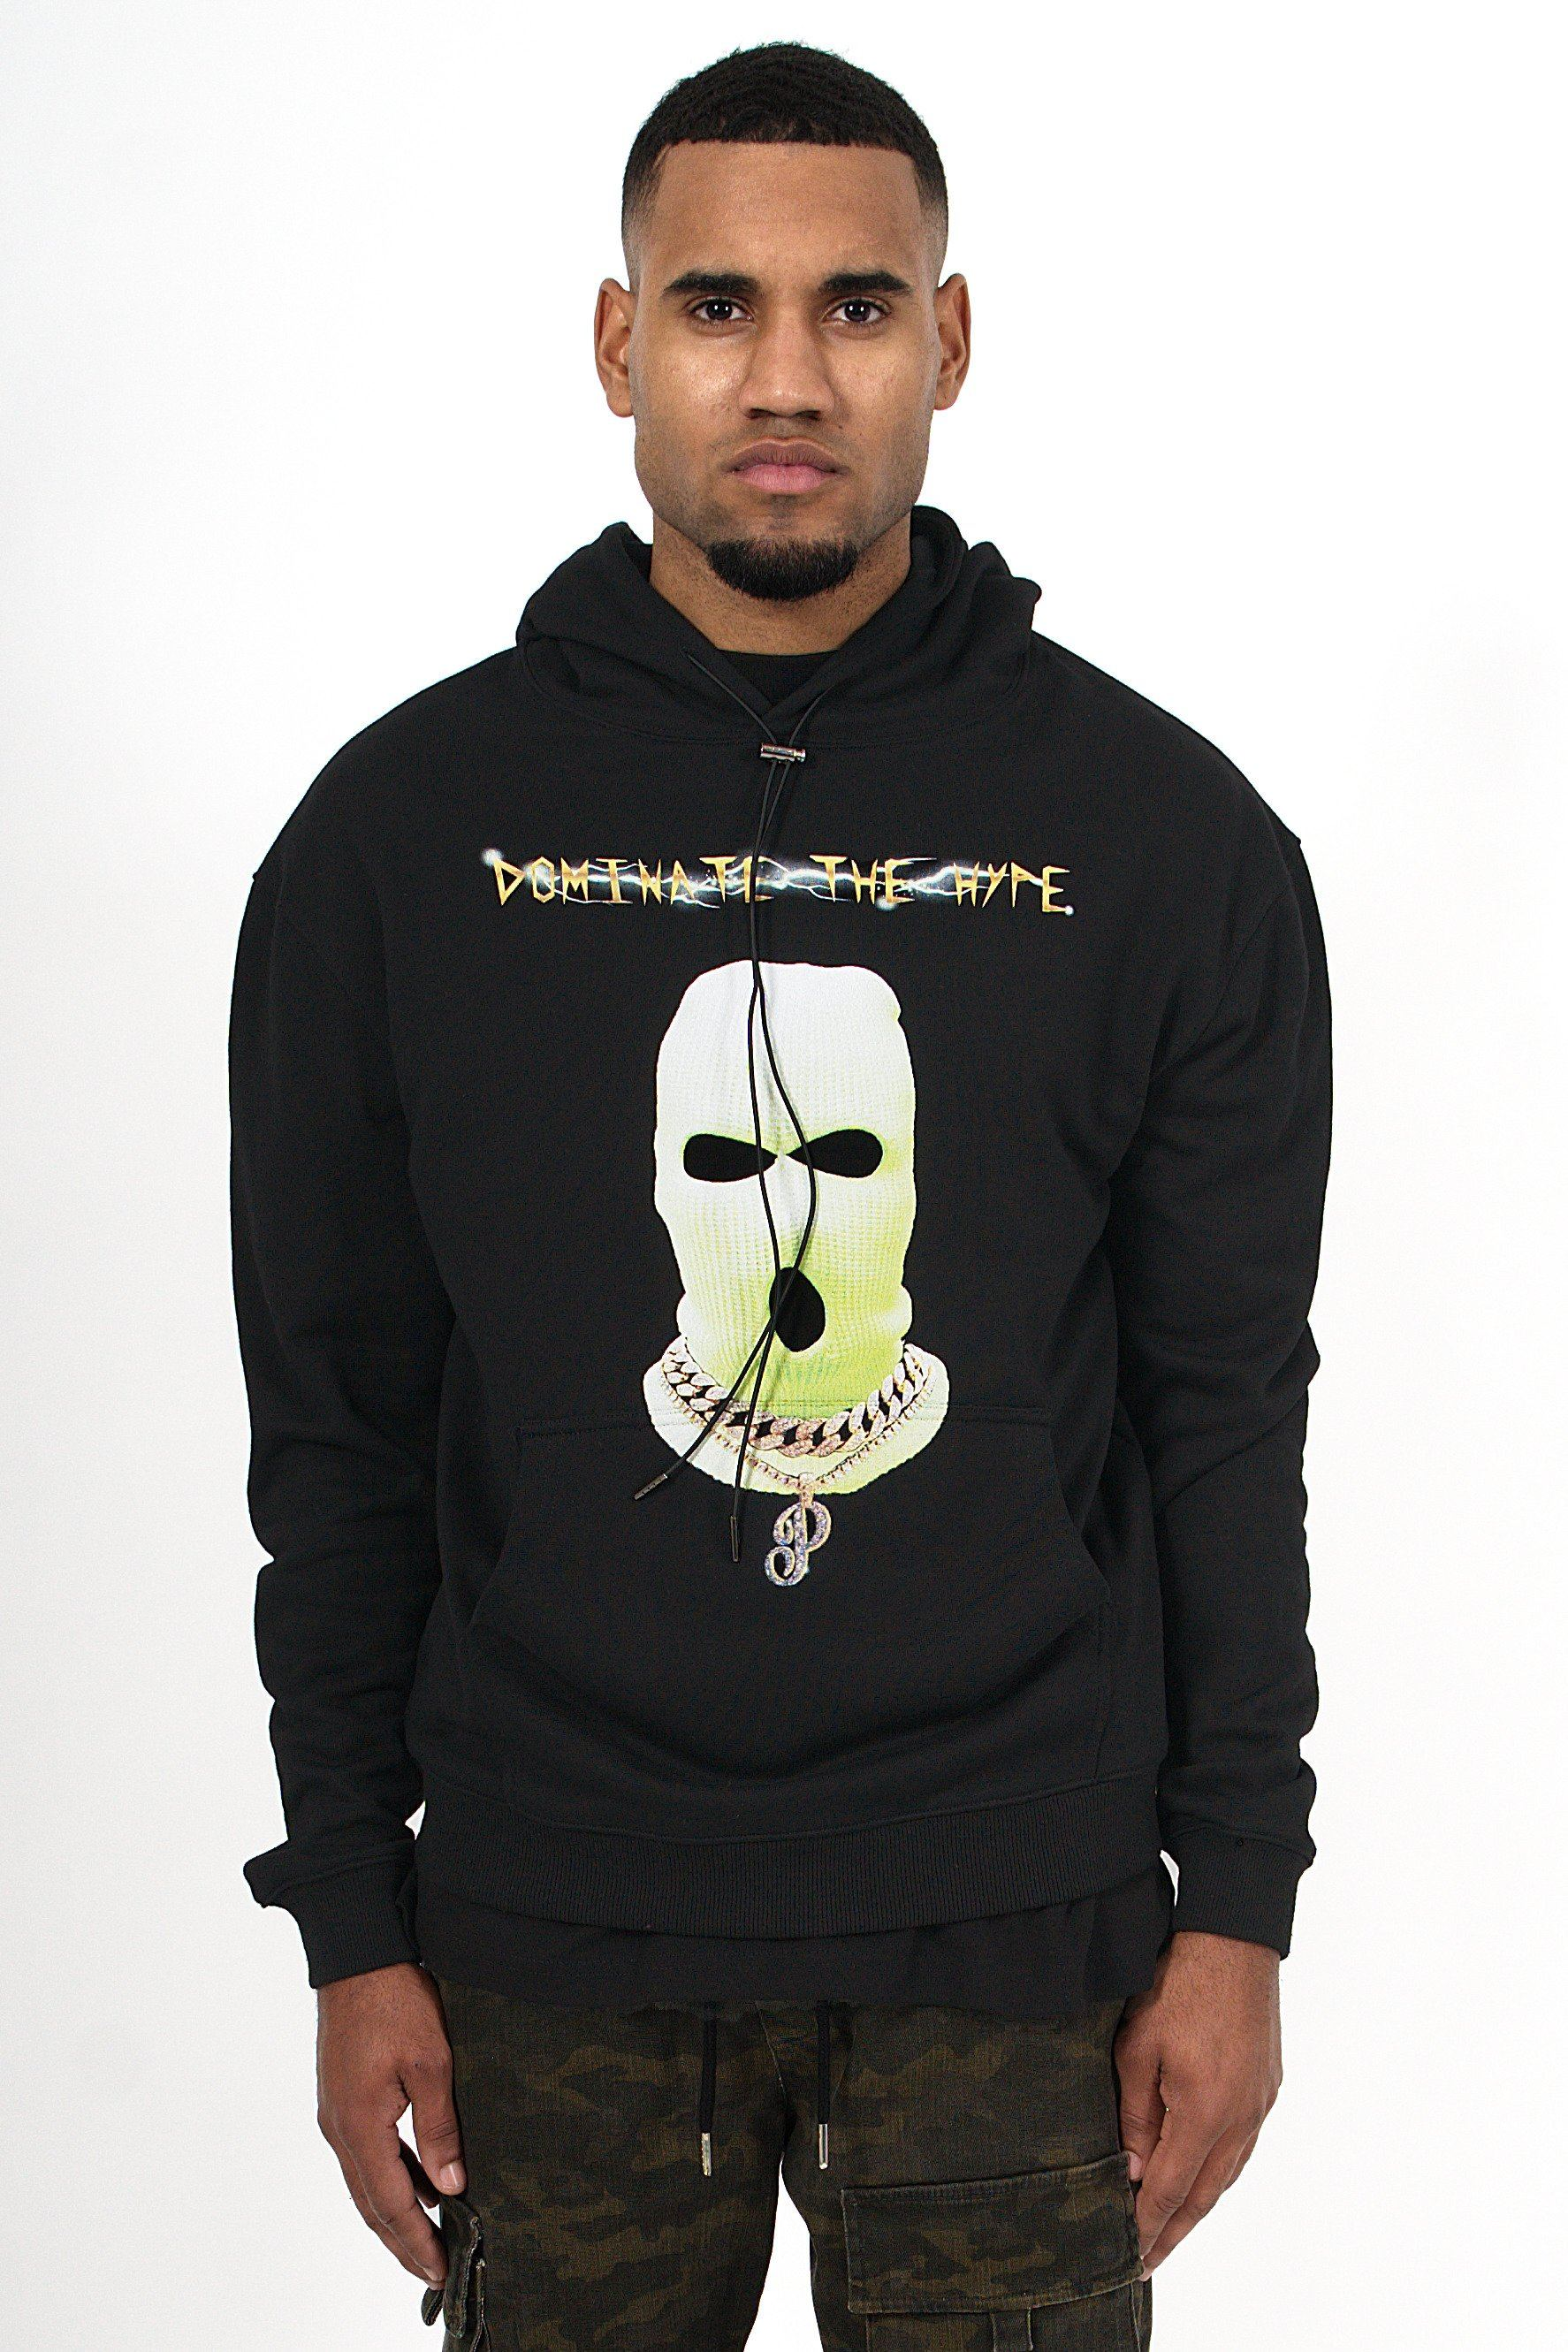 Dallas Oversized Hoodie Black - PEGADOR - Dominate the Hype